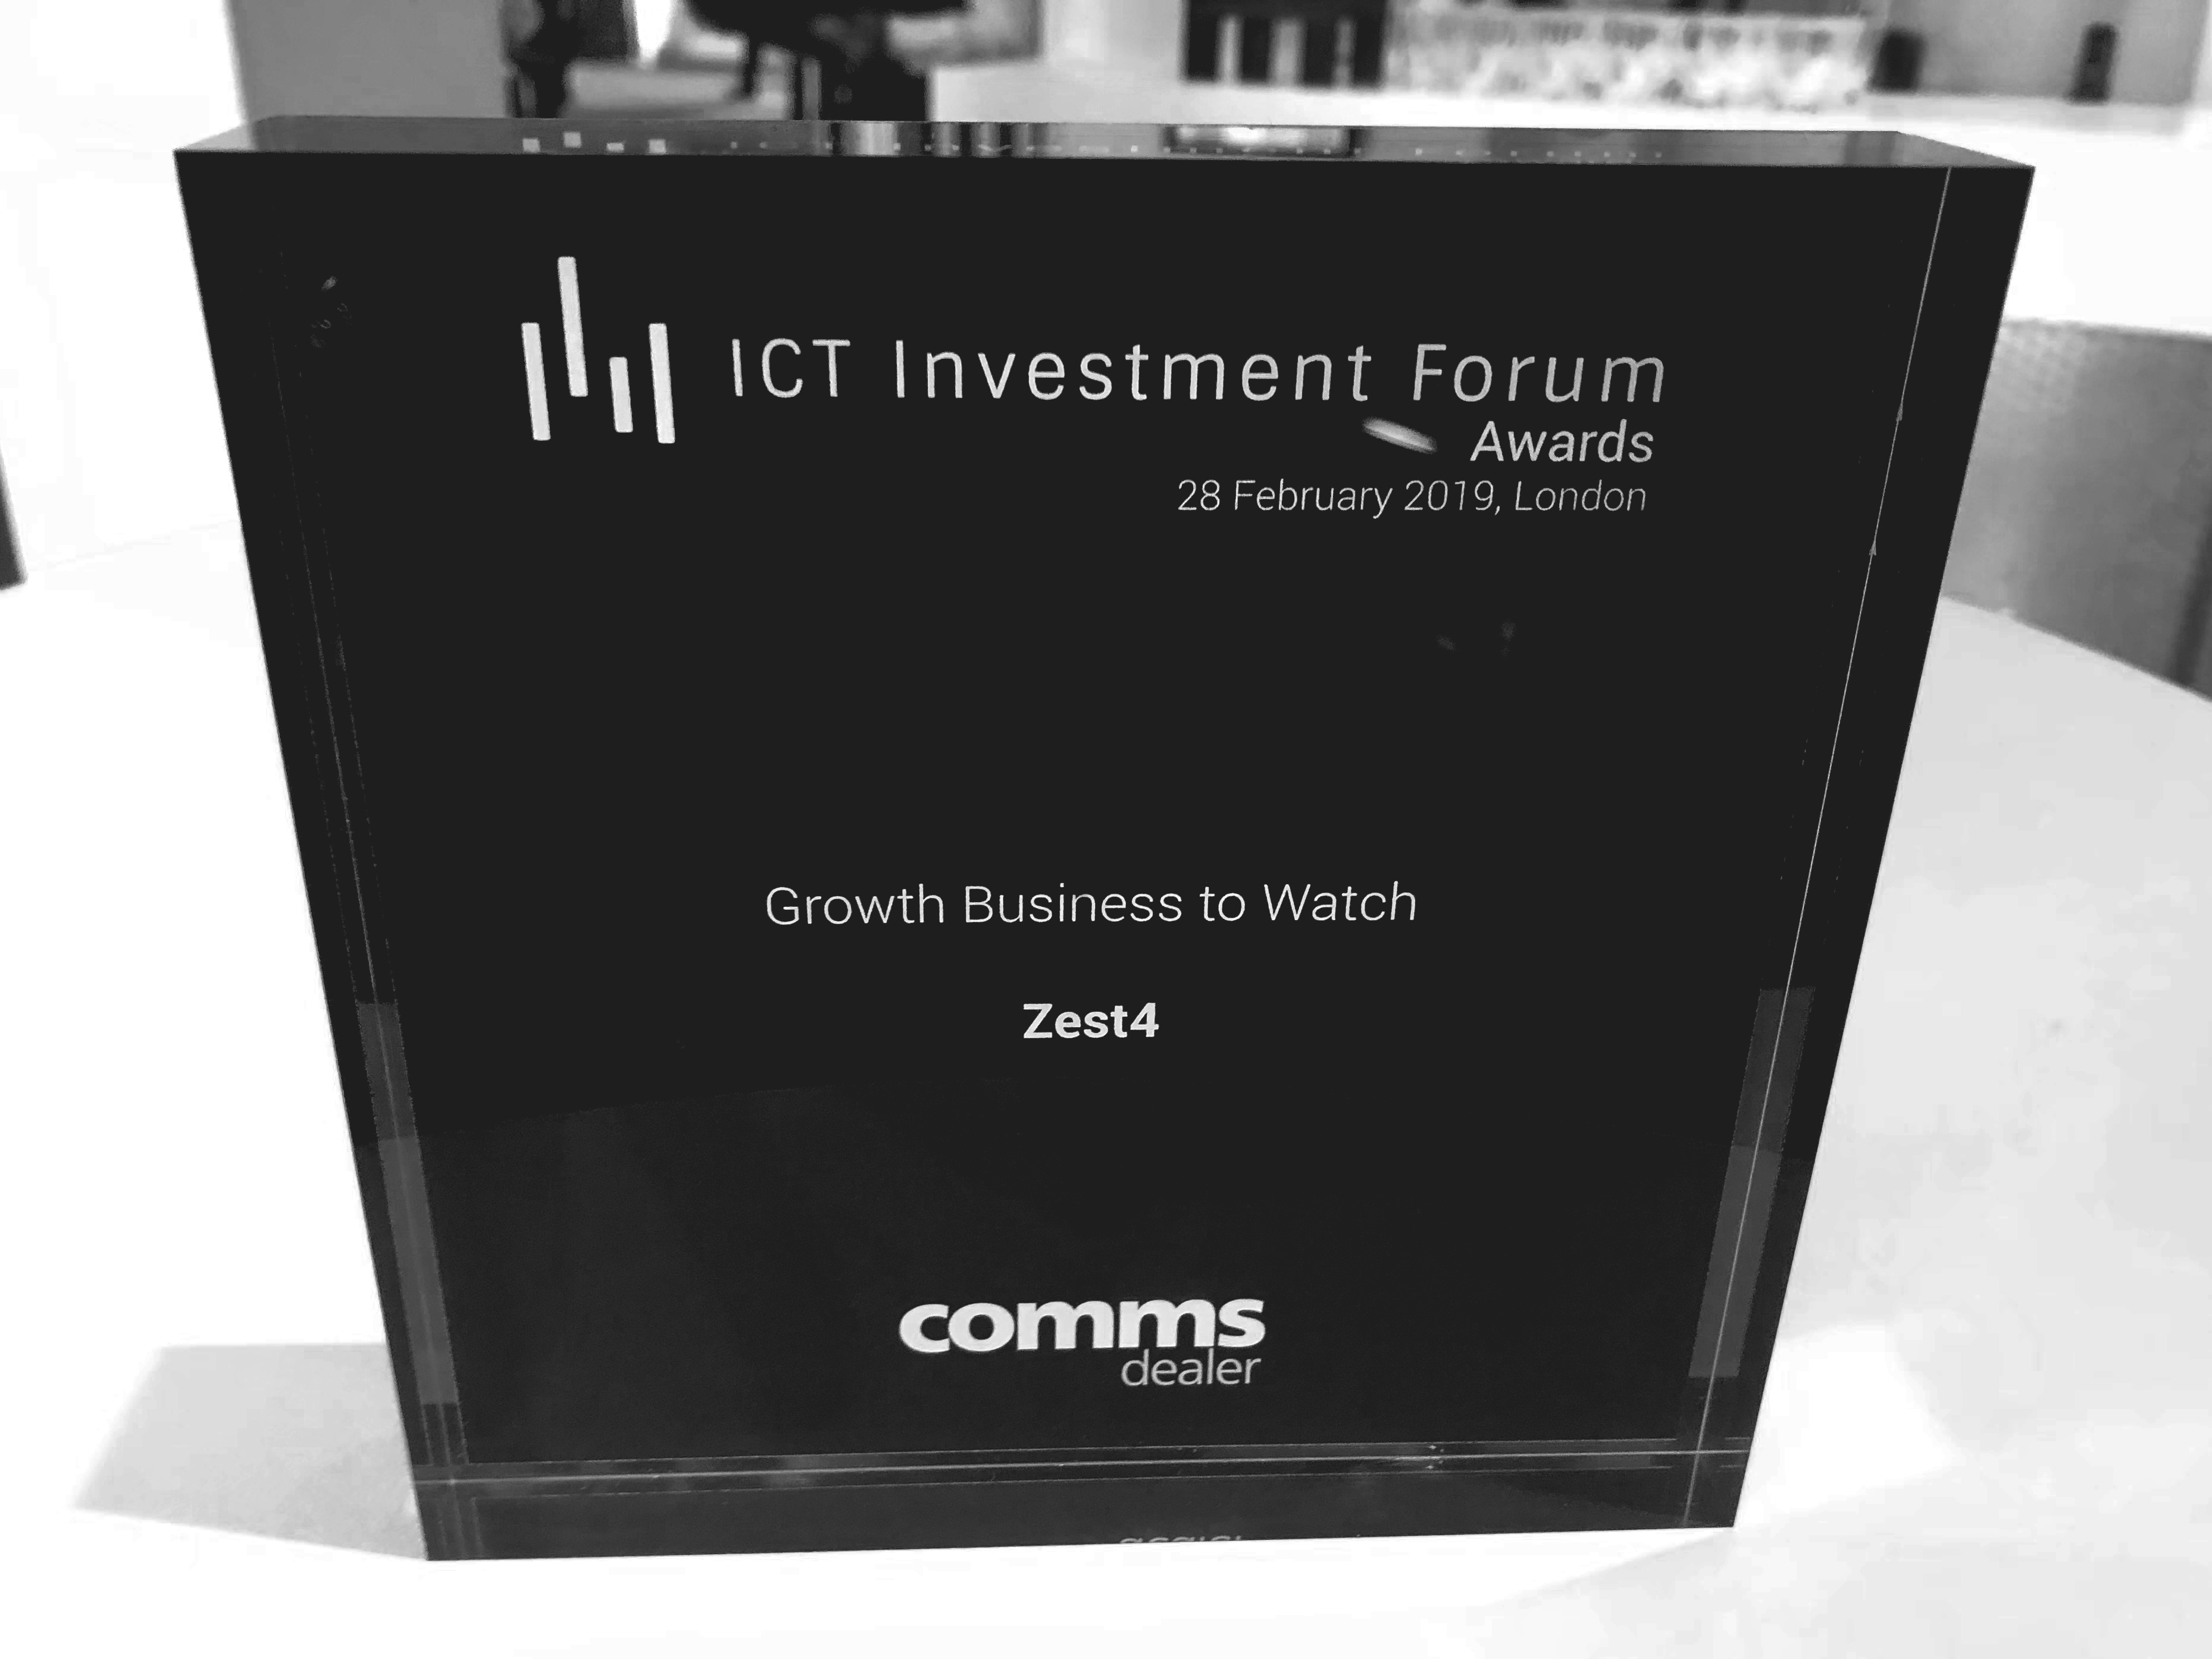 Zest4 ICT Investment Forum London 2019